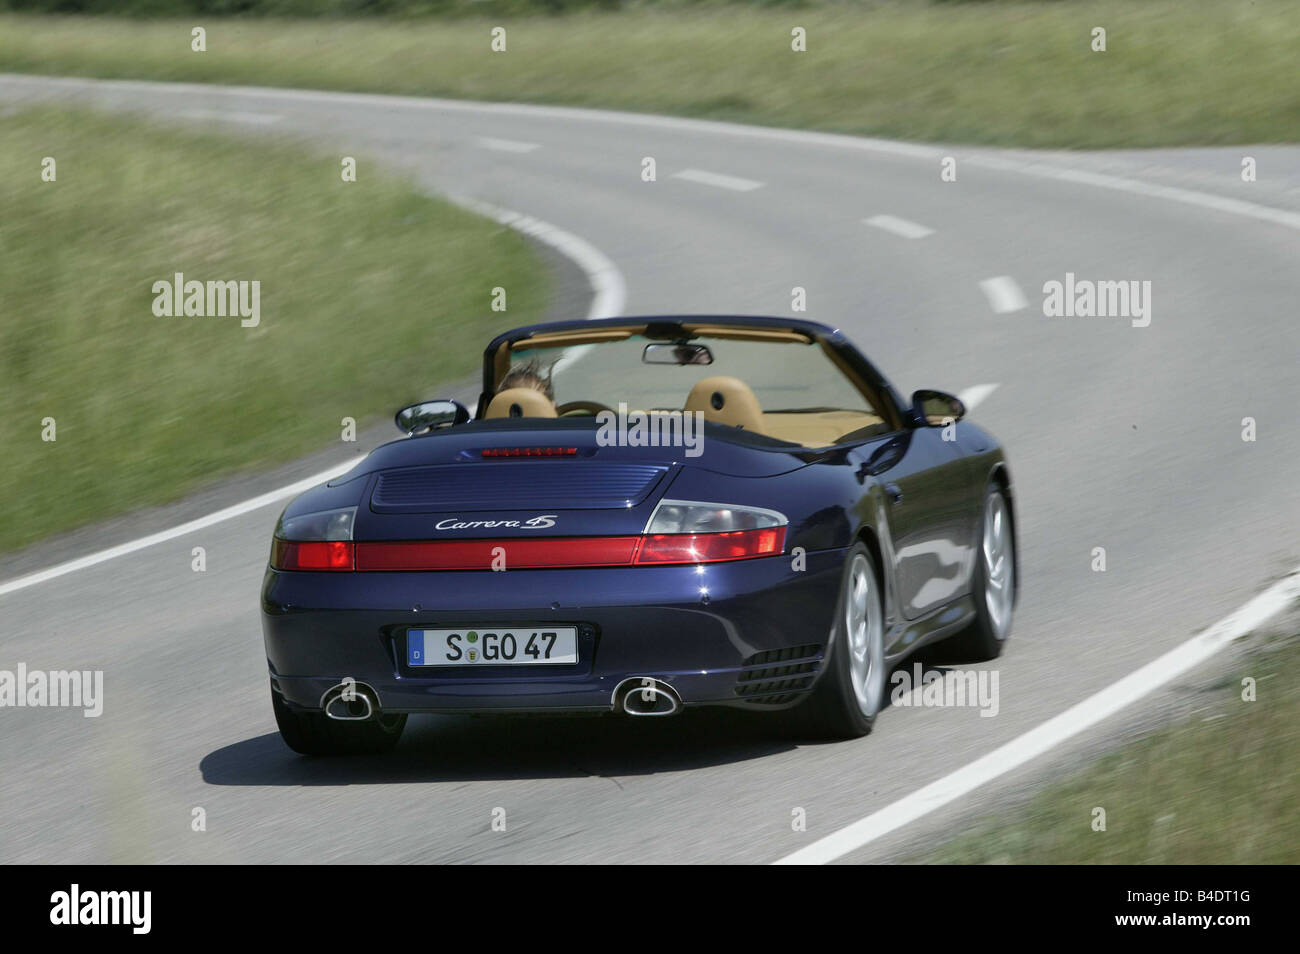 Car Porsche Carrera 4s Convertible Blue Open Top Driving Stock